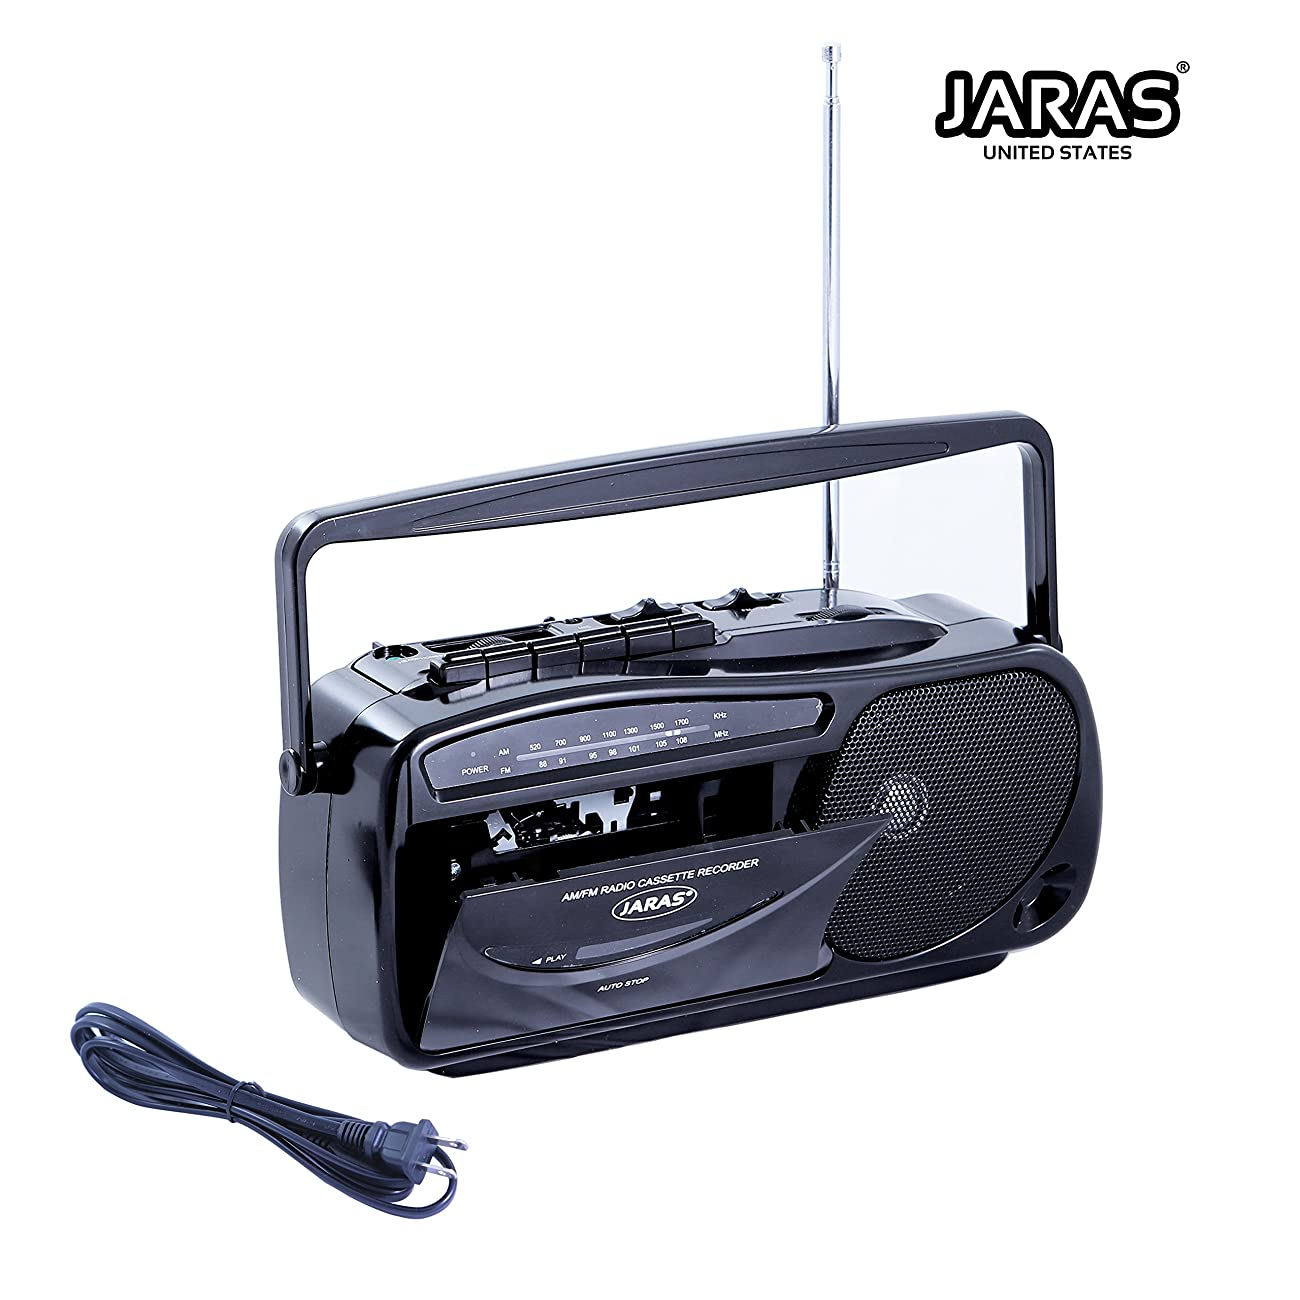 Jaras JJ-2618 Limited Edition Portable Boombox Tape Cassette Player/recorder with AM/FM Radio Stereo Speakers & Headphone Jack 1